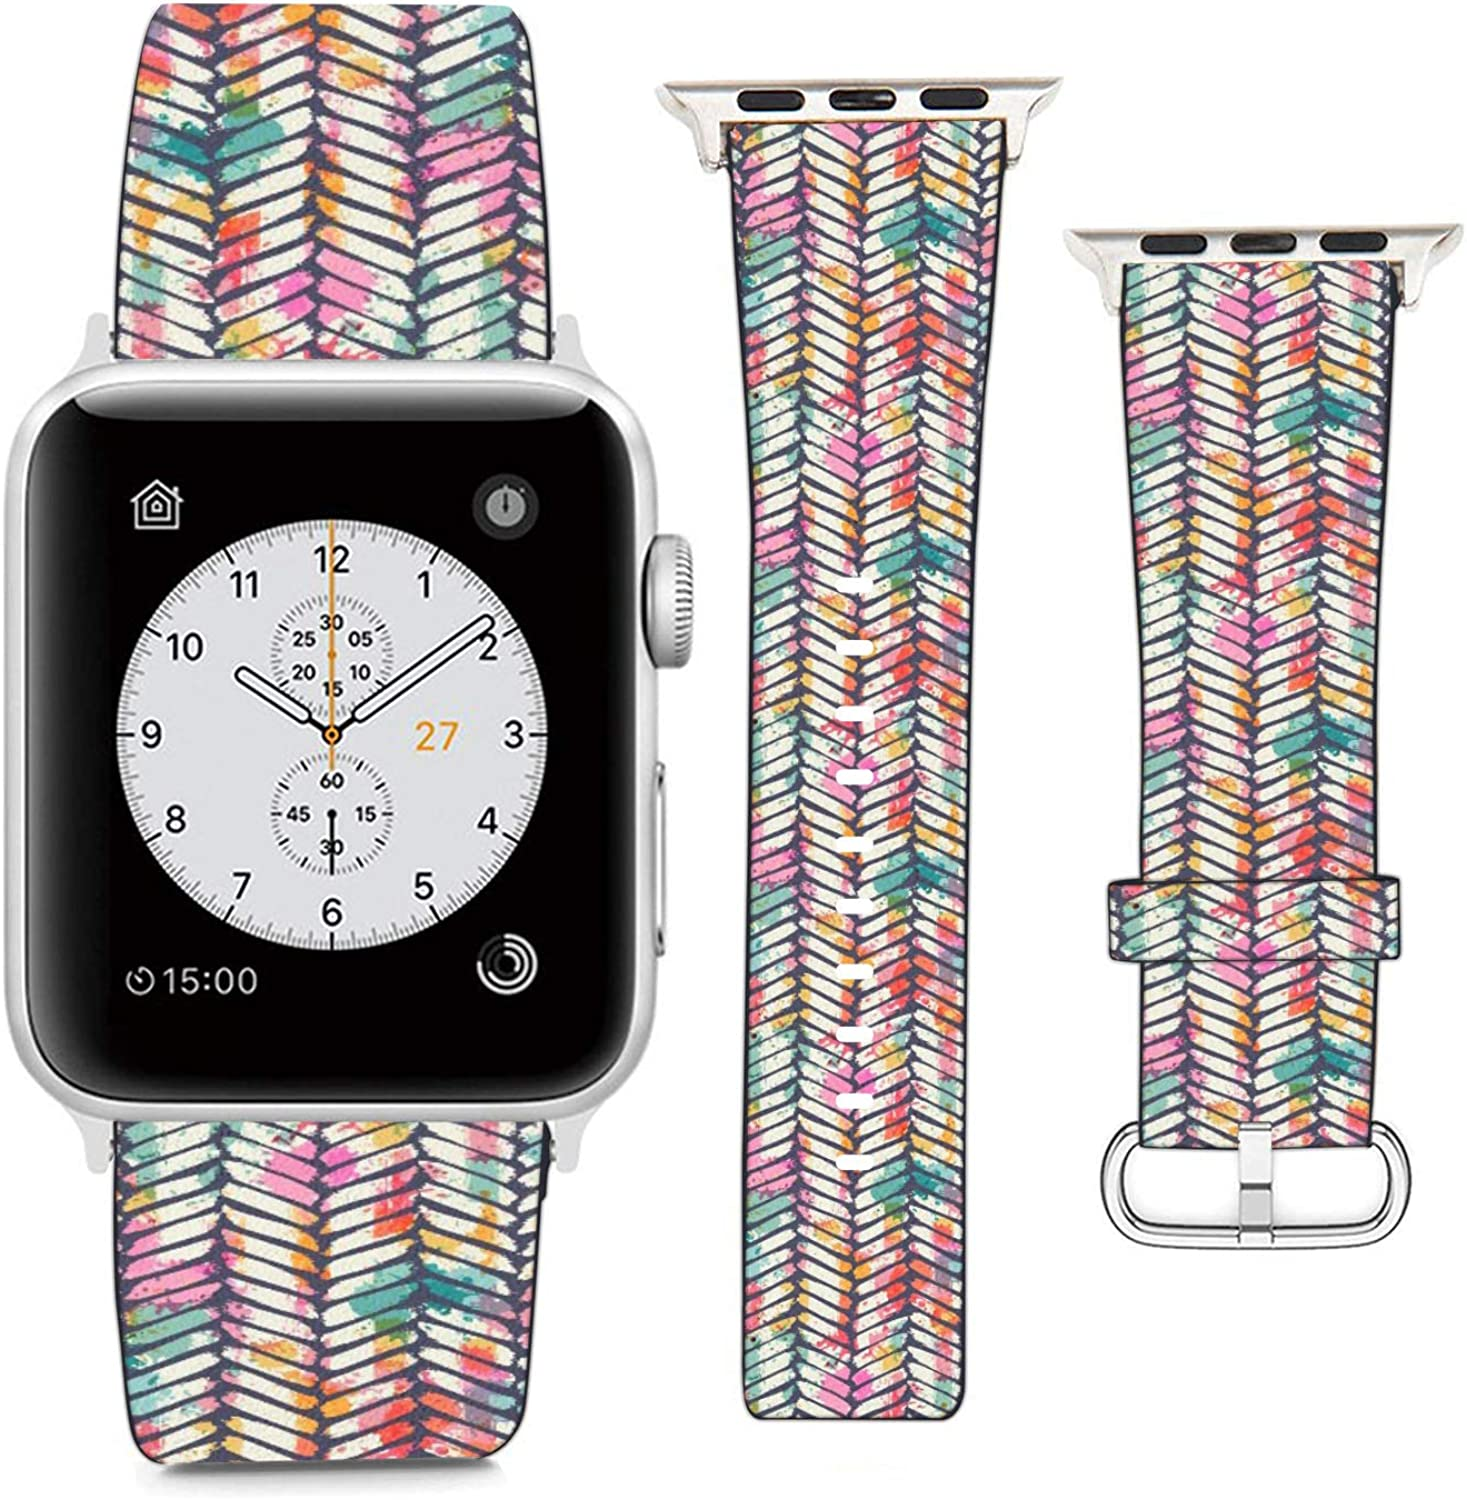 Compatible with Apple Watch Wristband 42mm 44mm, (Grunge Gemmetric Tie Dye Pattern) PU Leather Band Replacement Strap for iWatch Series 5 4 3 2 1